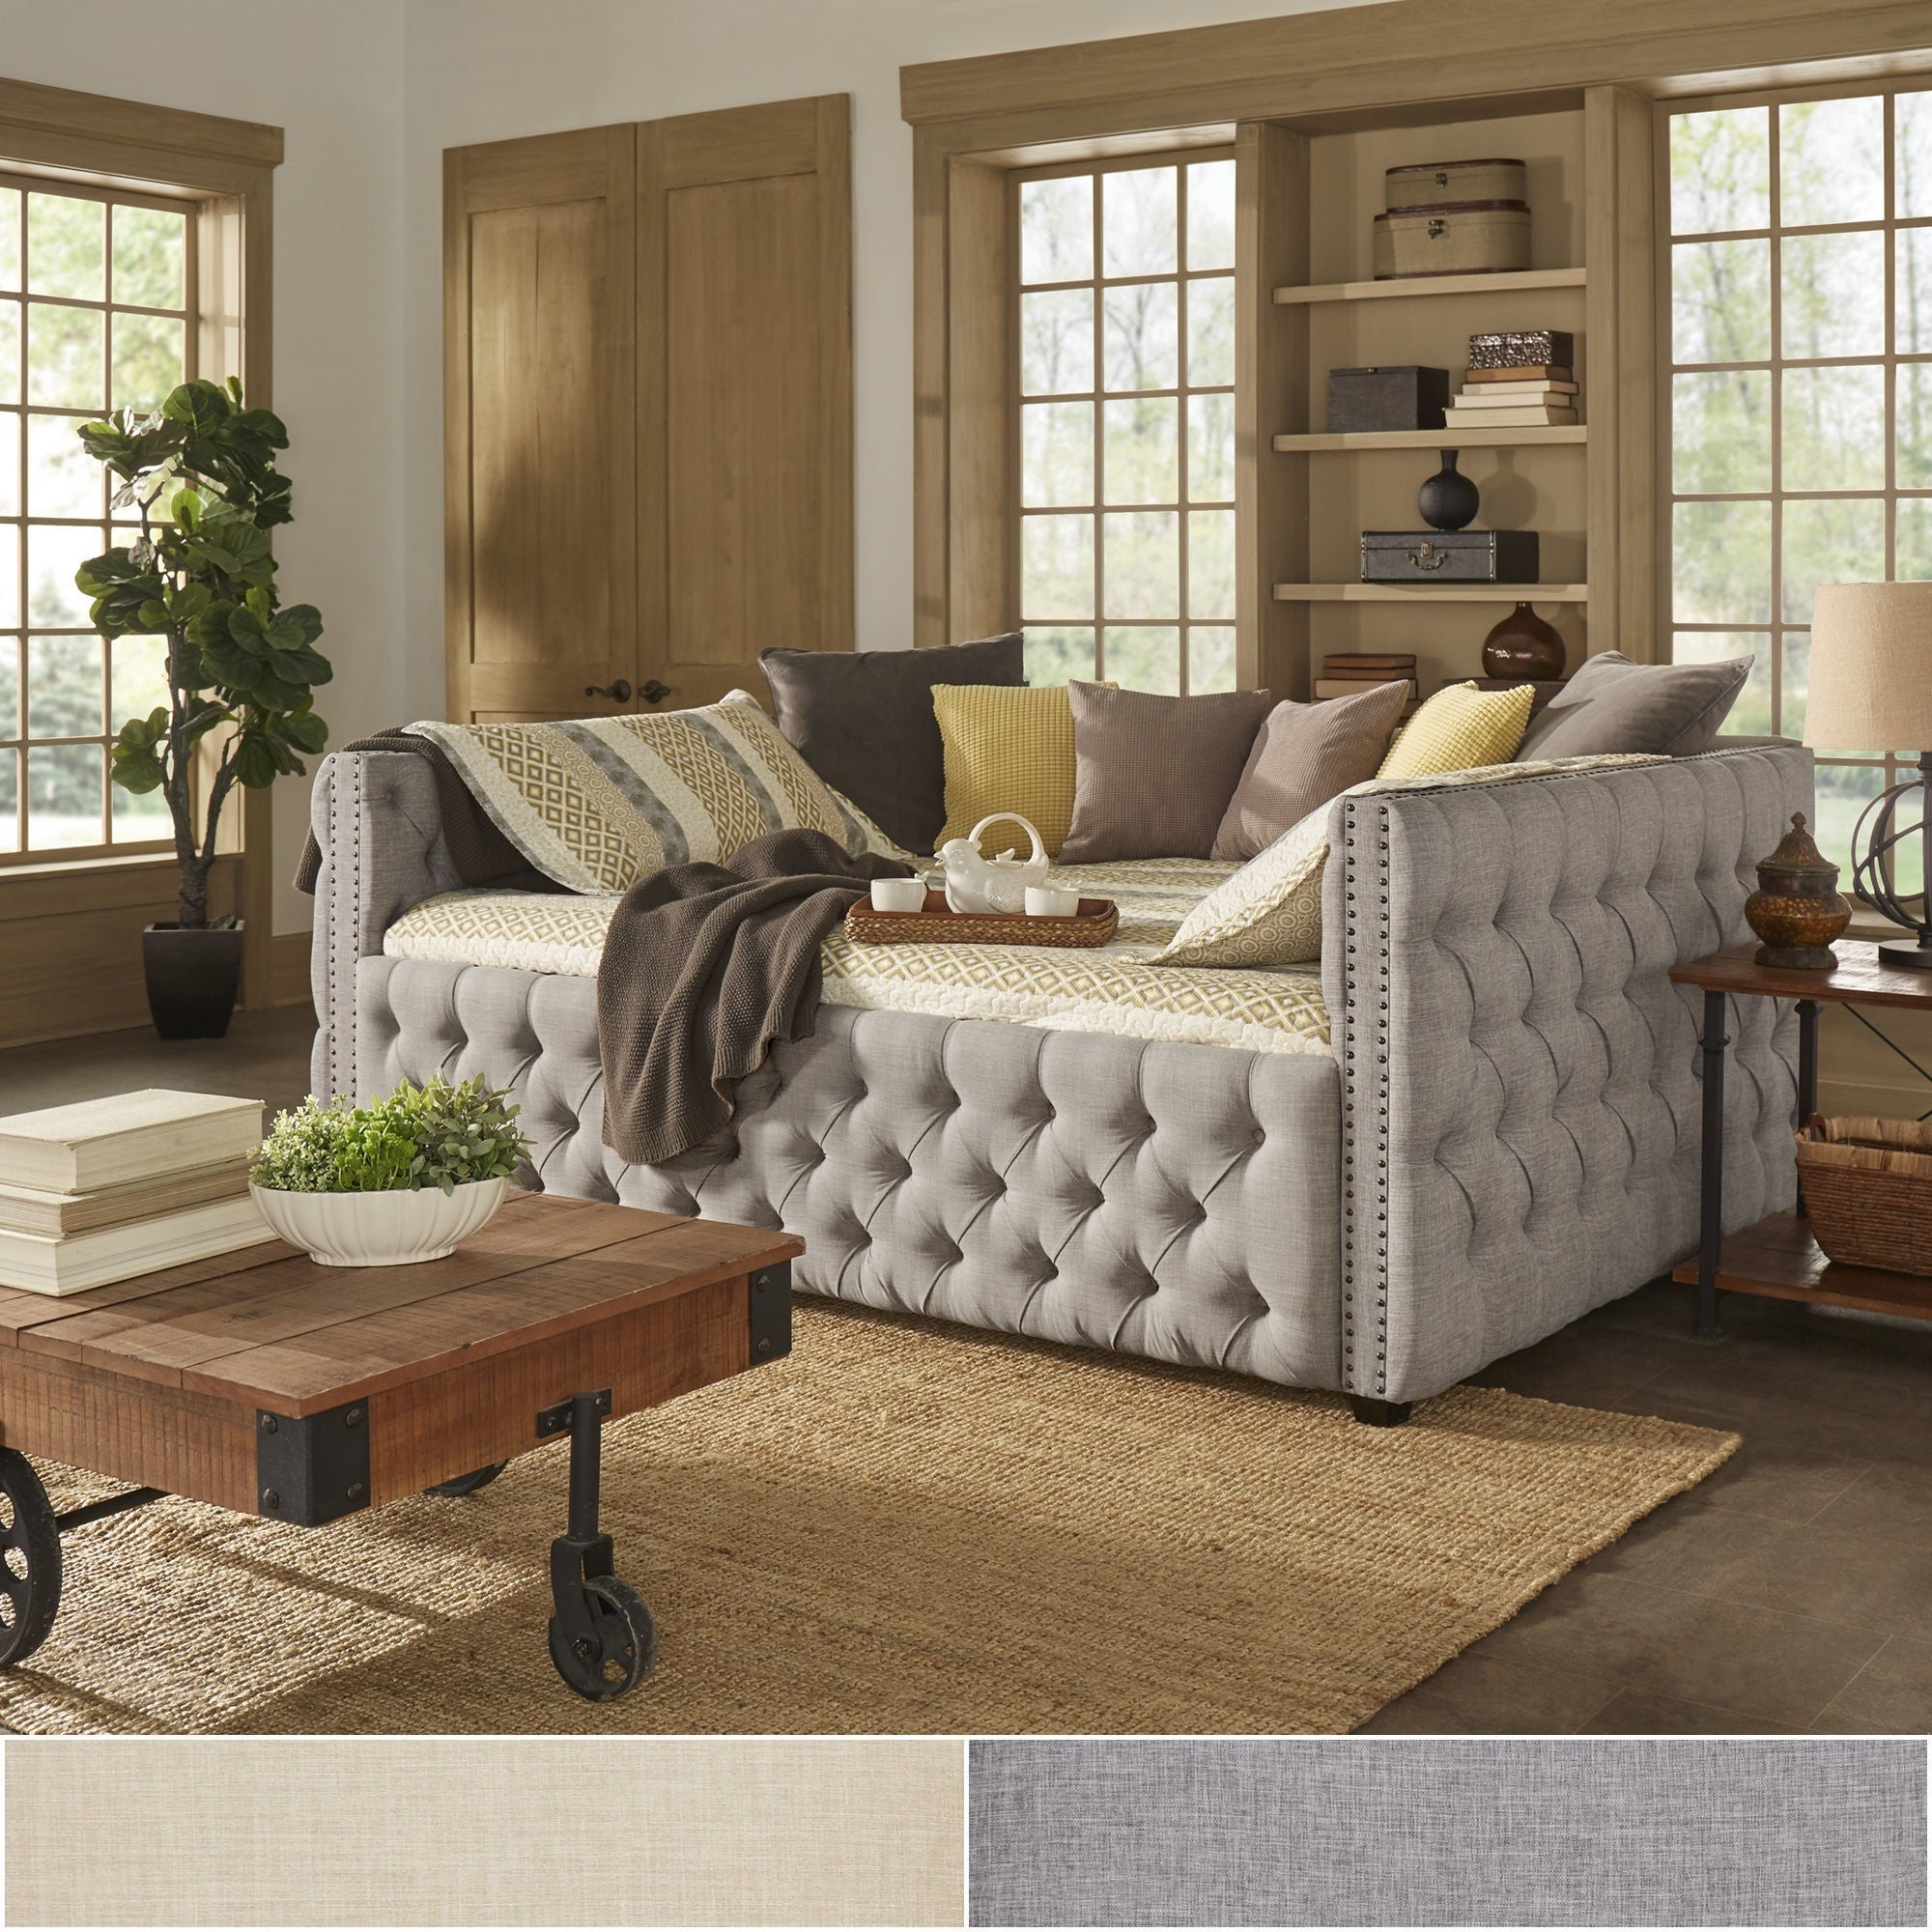 Knightsbridge Full Size Tufted Nailhead Chesterfield Daybed And Trundle By Inspire Q Free Shipping Today 14341367